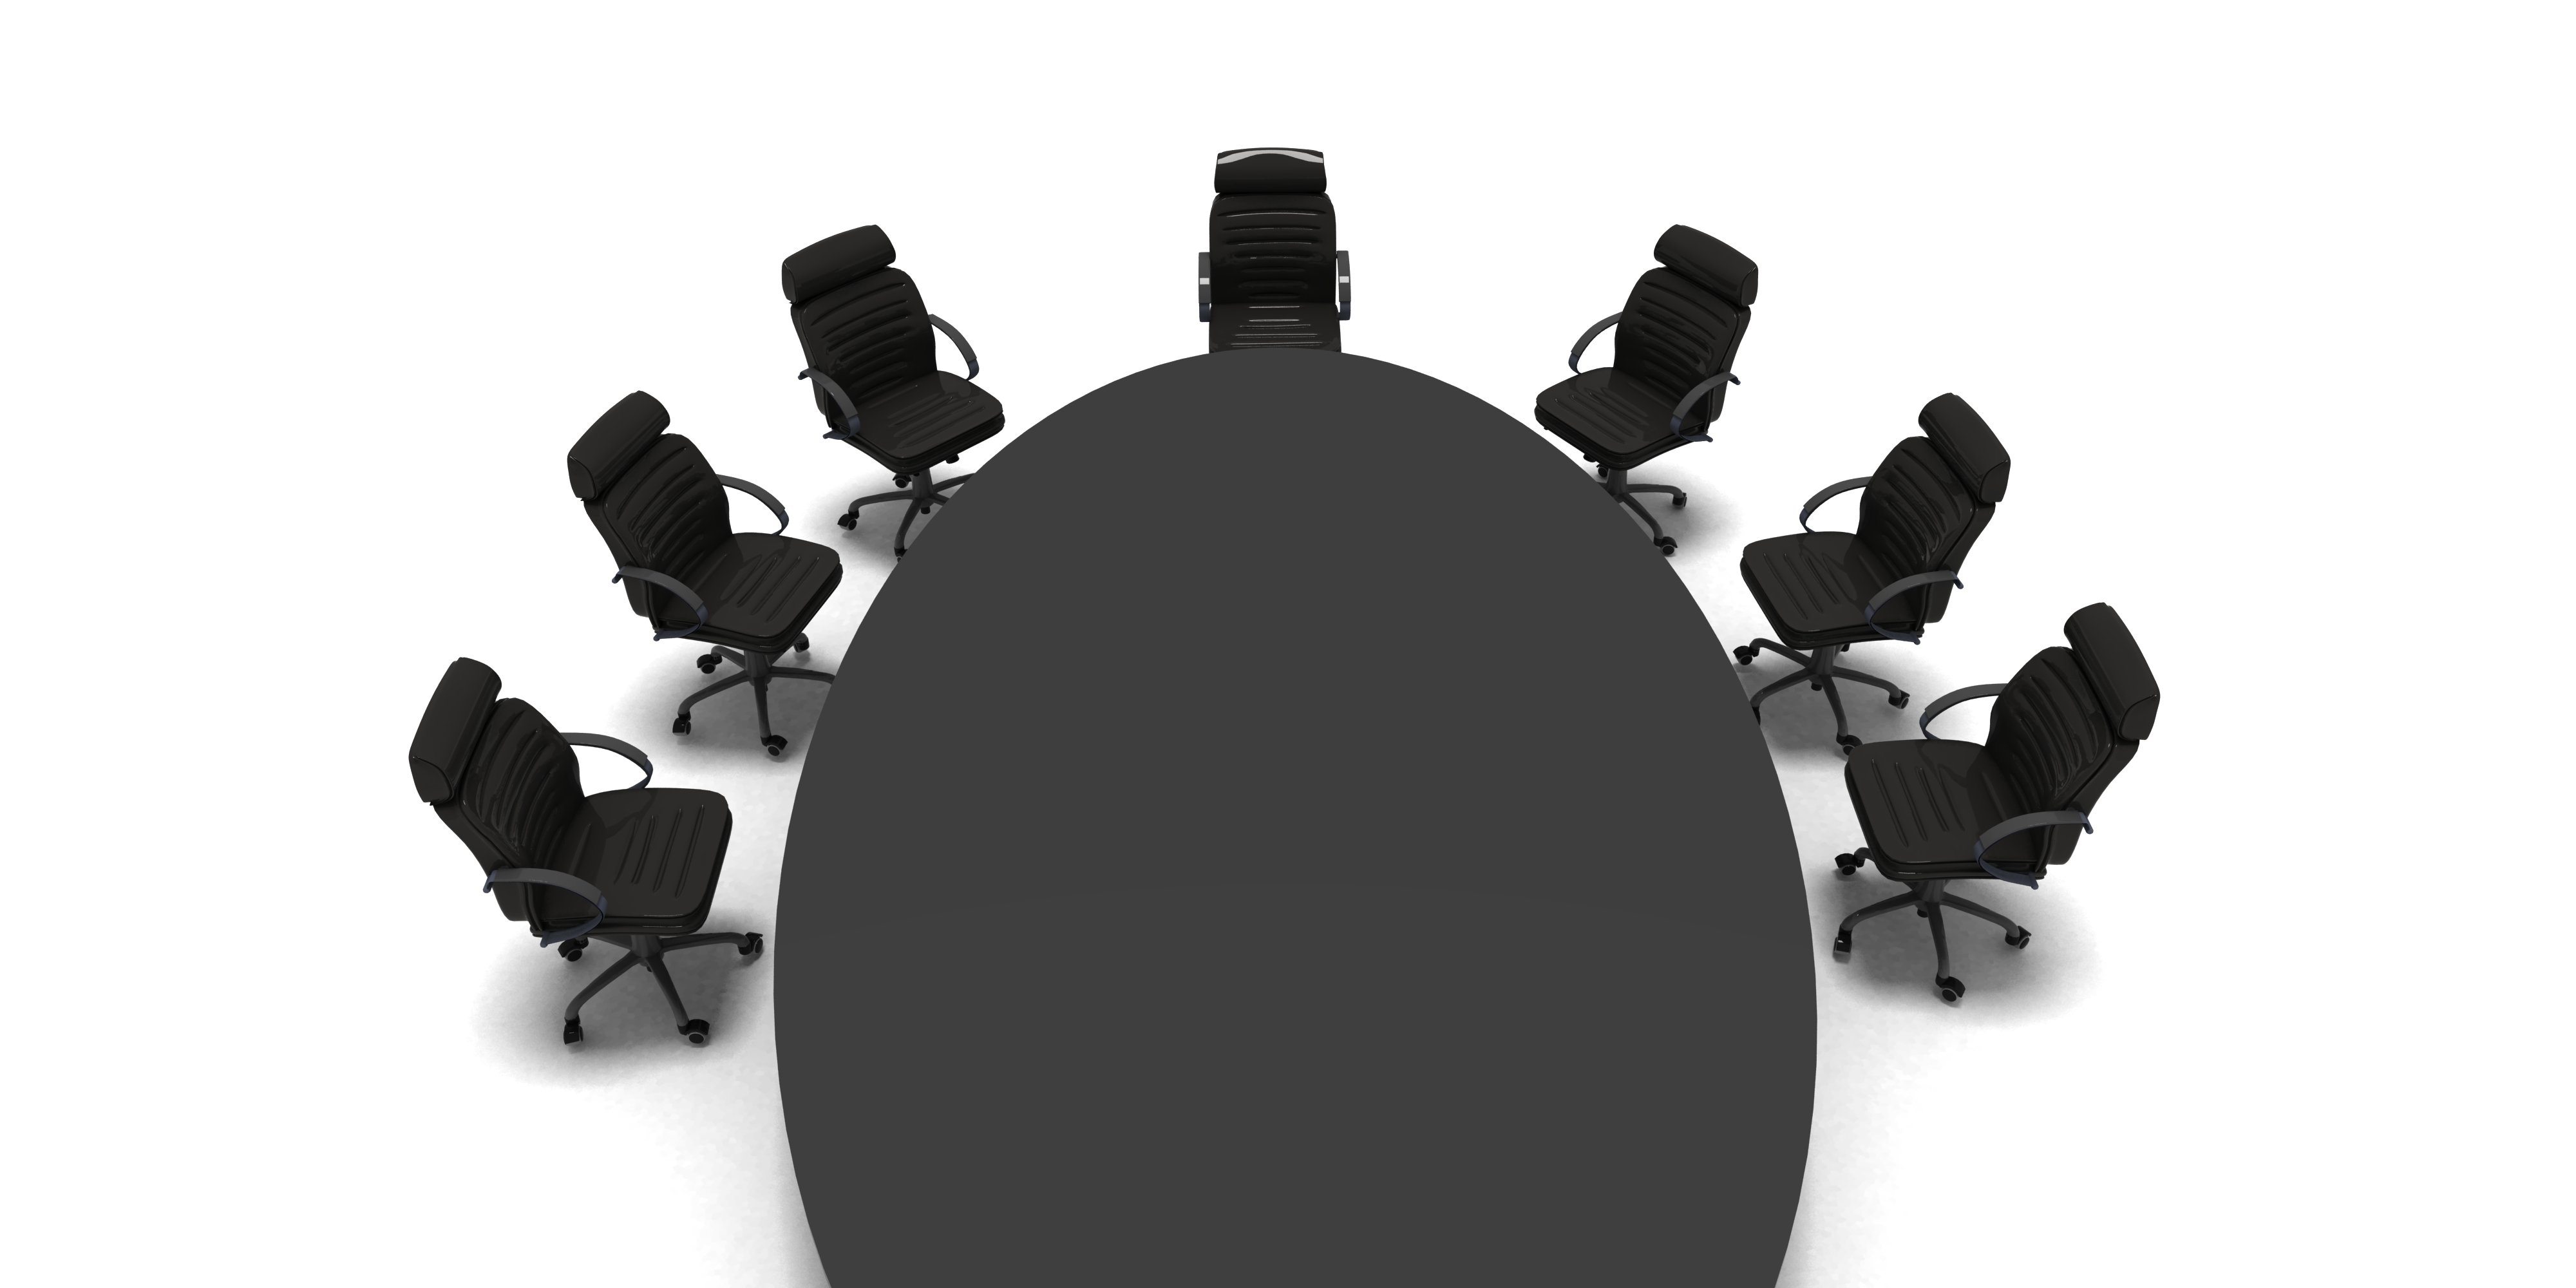 FDs' influence is growing in the boardroom